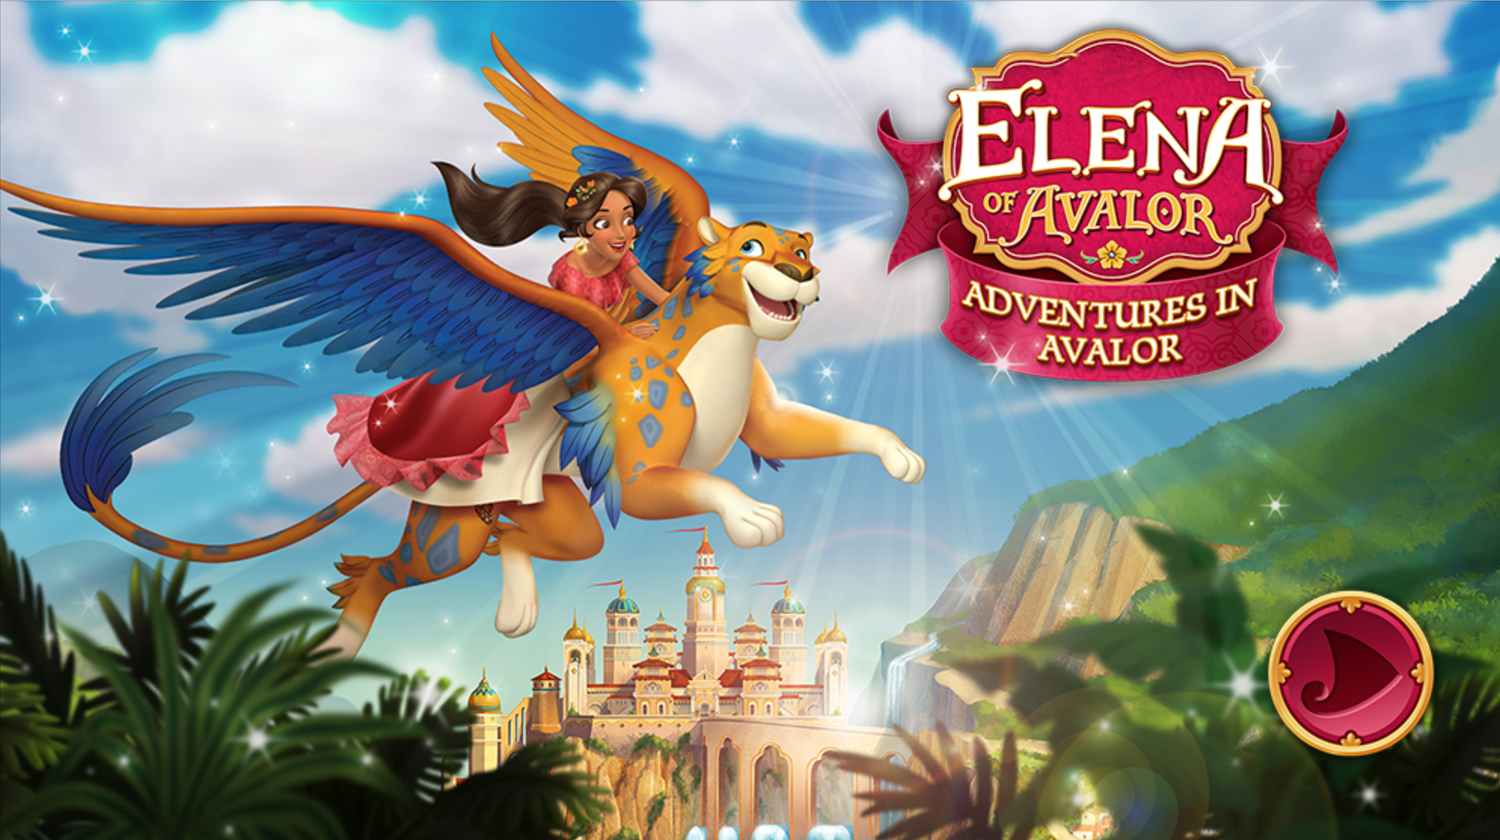 Elena of Avalor Adventures in Avalor Game Welcome Screen Screenshot.